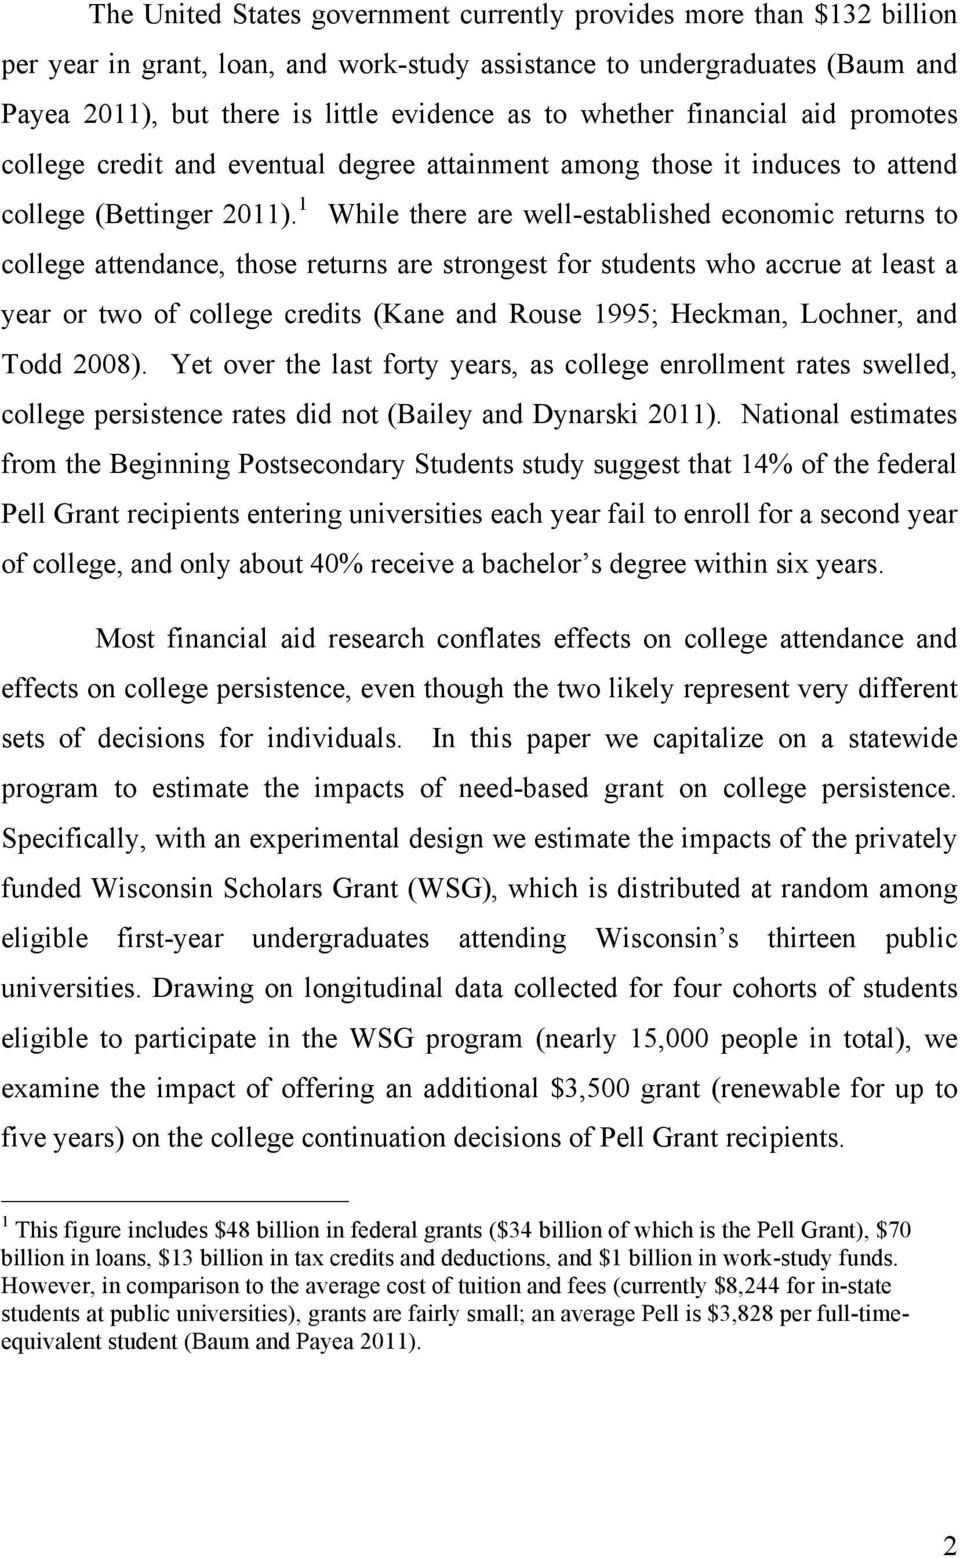 1 While there are well-established economic returns to college attendance, those returns are strongest for students who accrue at least a year or two of college credits (Kane and Rouse 1995; Heckman,